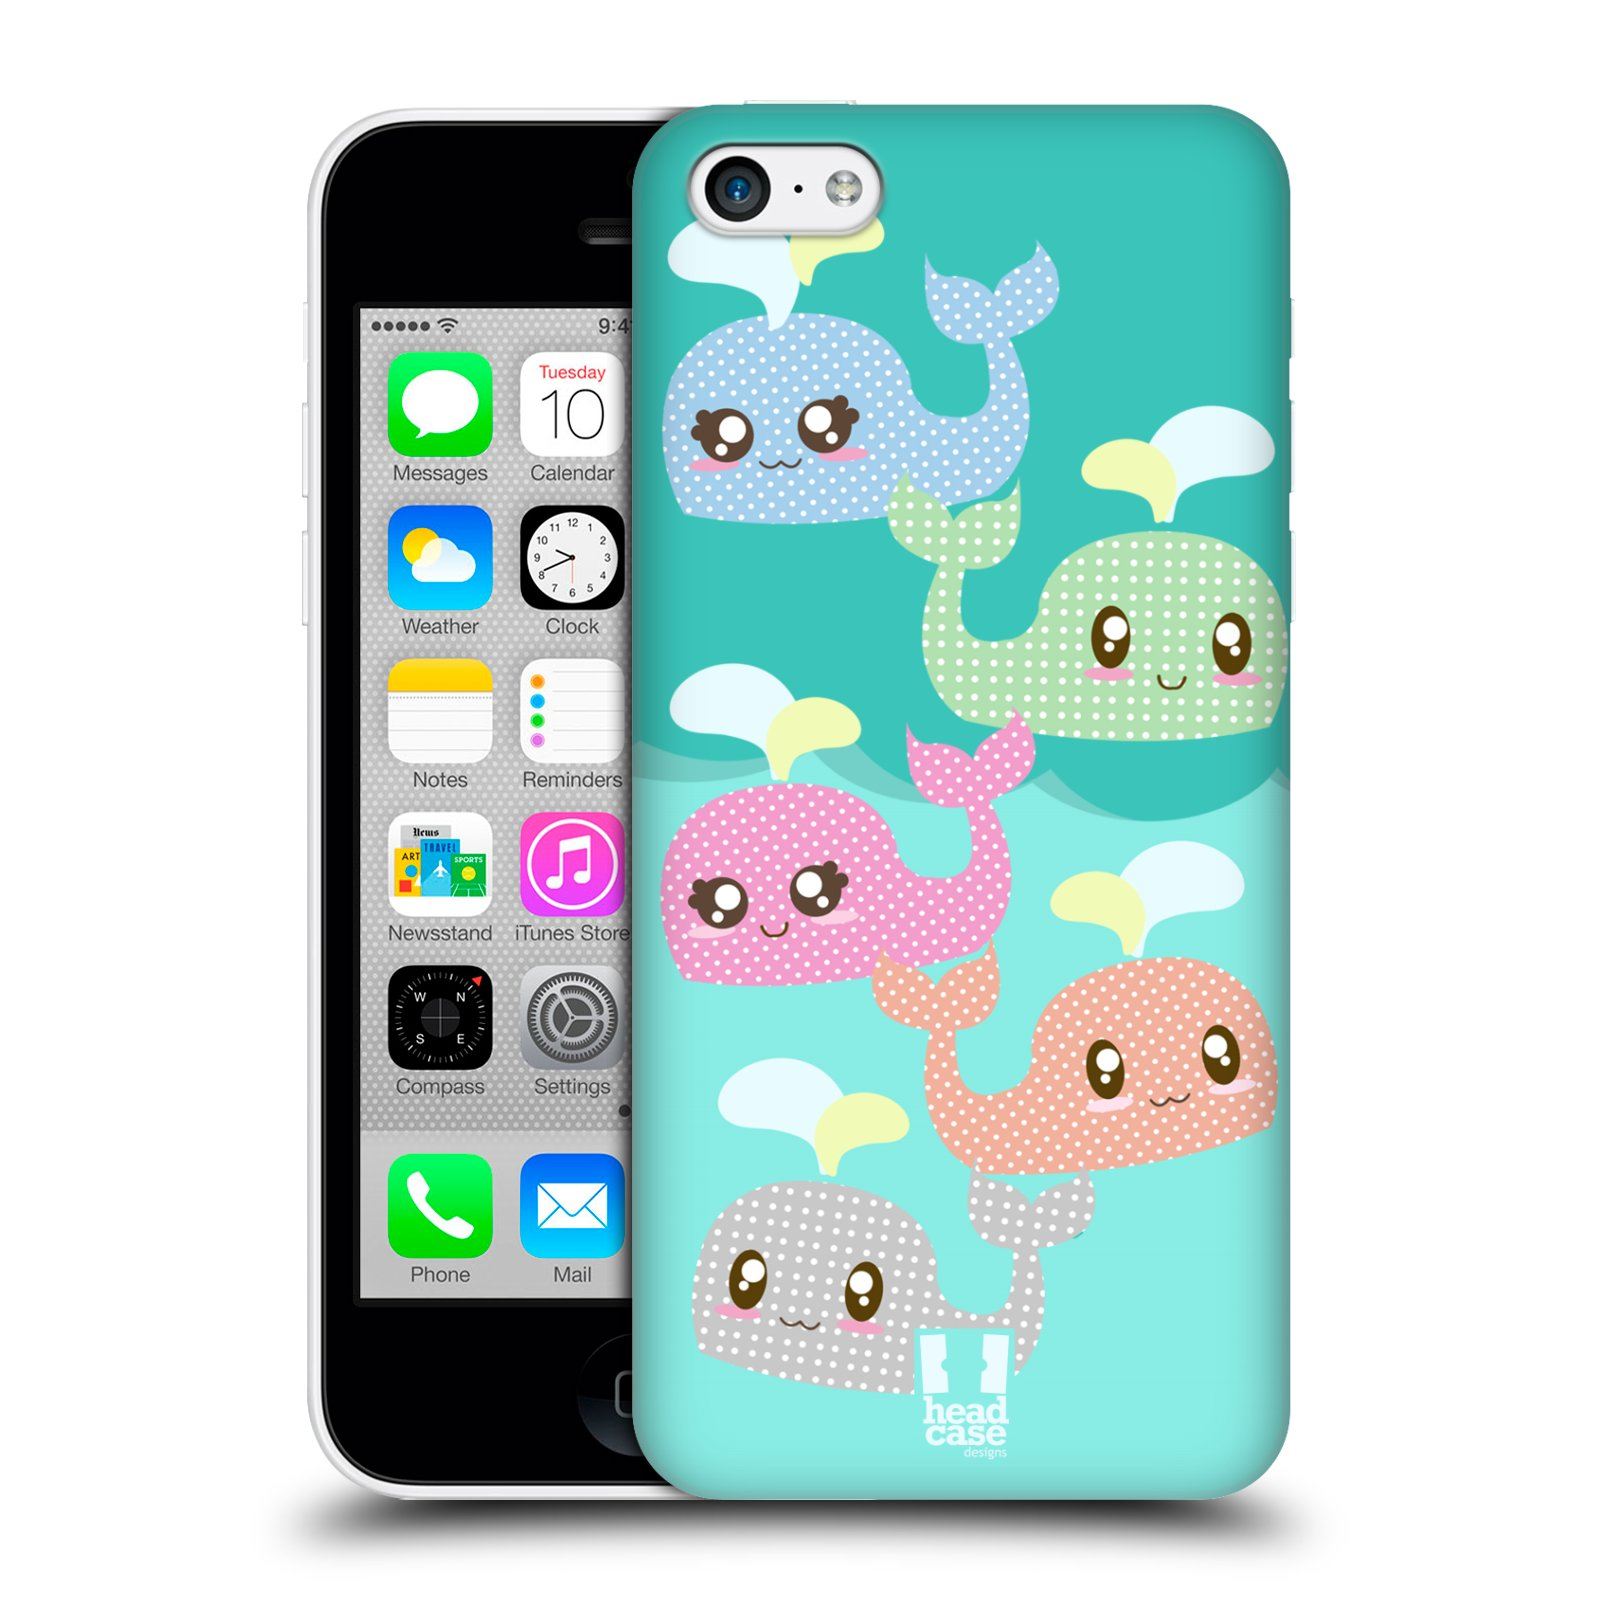 HEAD-CASE-DESIGNS-KAWAII-WHALE-PROTECTIVE-BACK-CASE-COVER-FOR-APPLE-iPHONE-5C